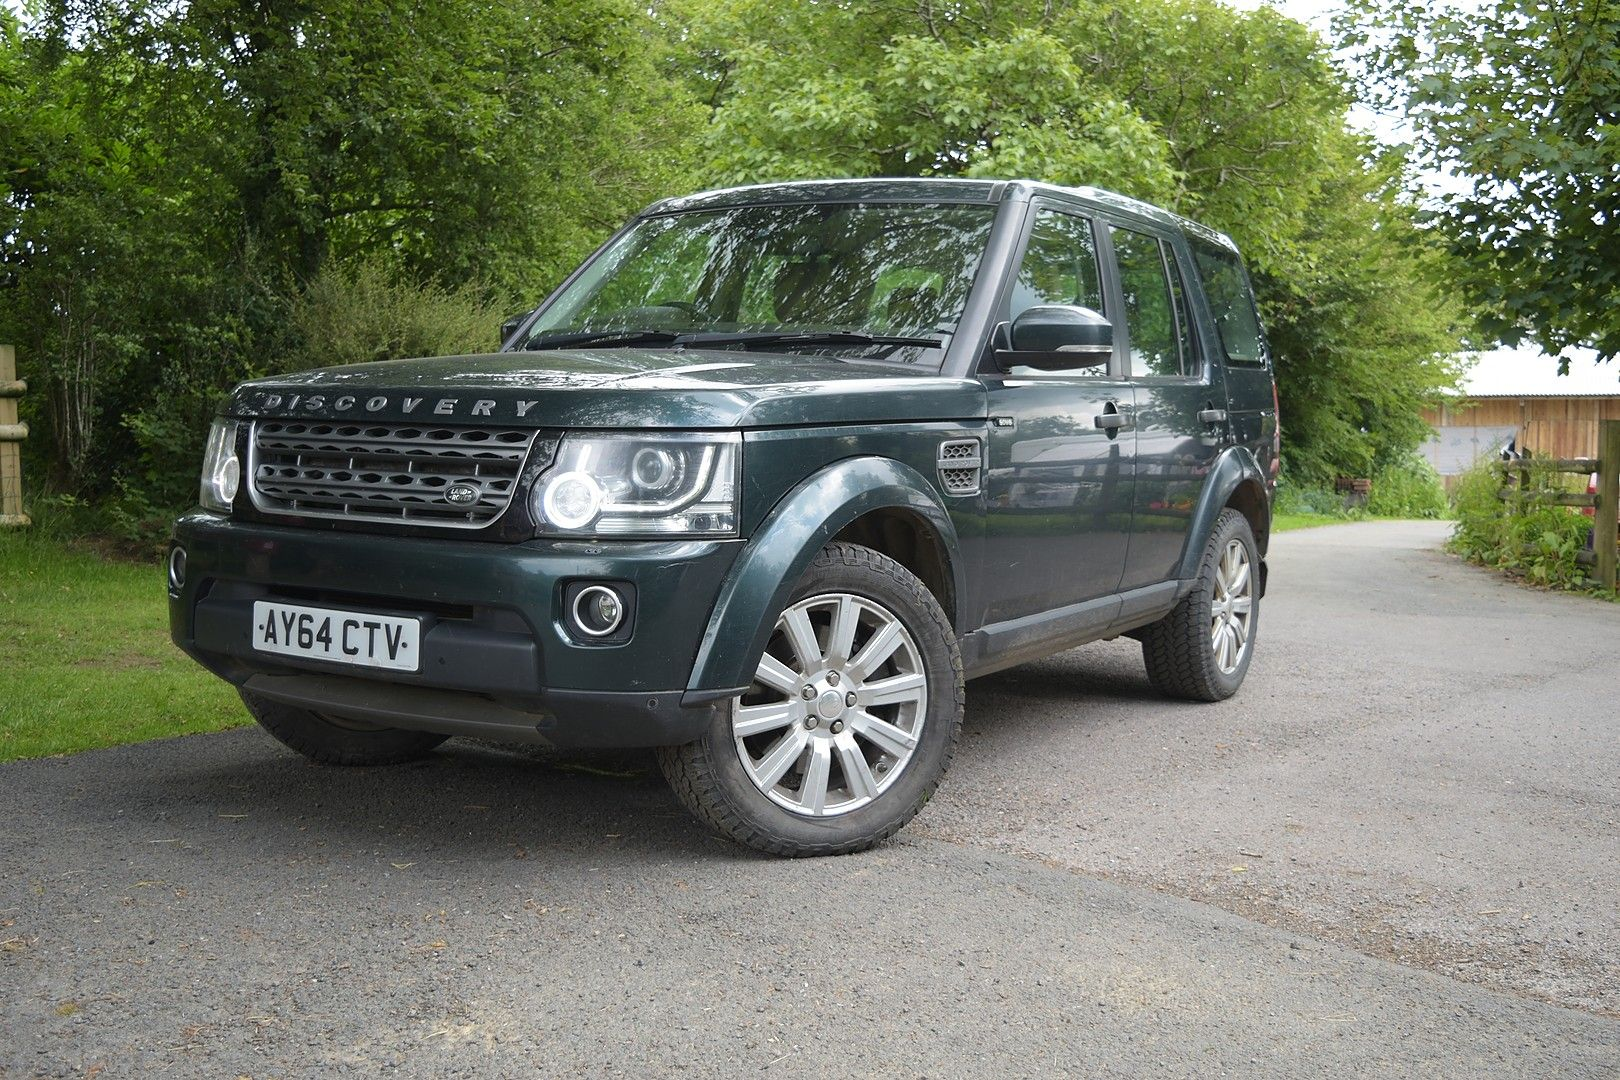 LAND ROVER Discovery 3.0 SDV6 GS - Thumbnail 1